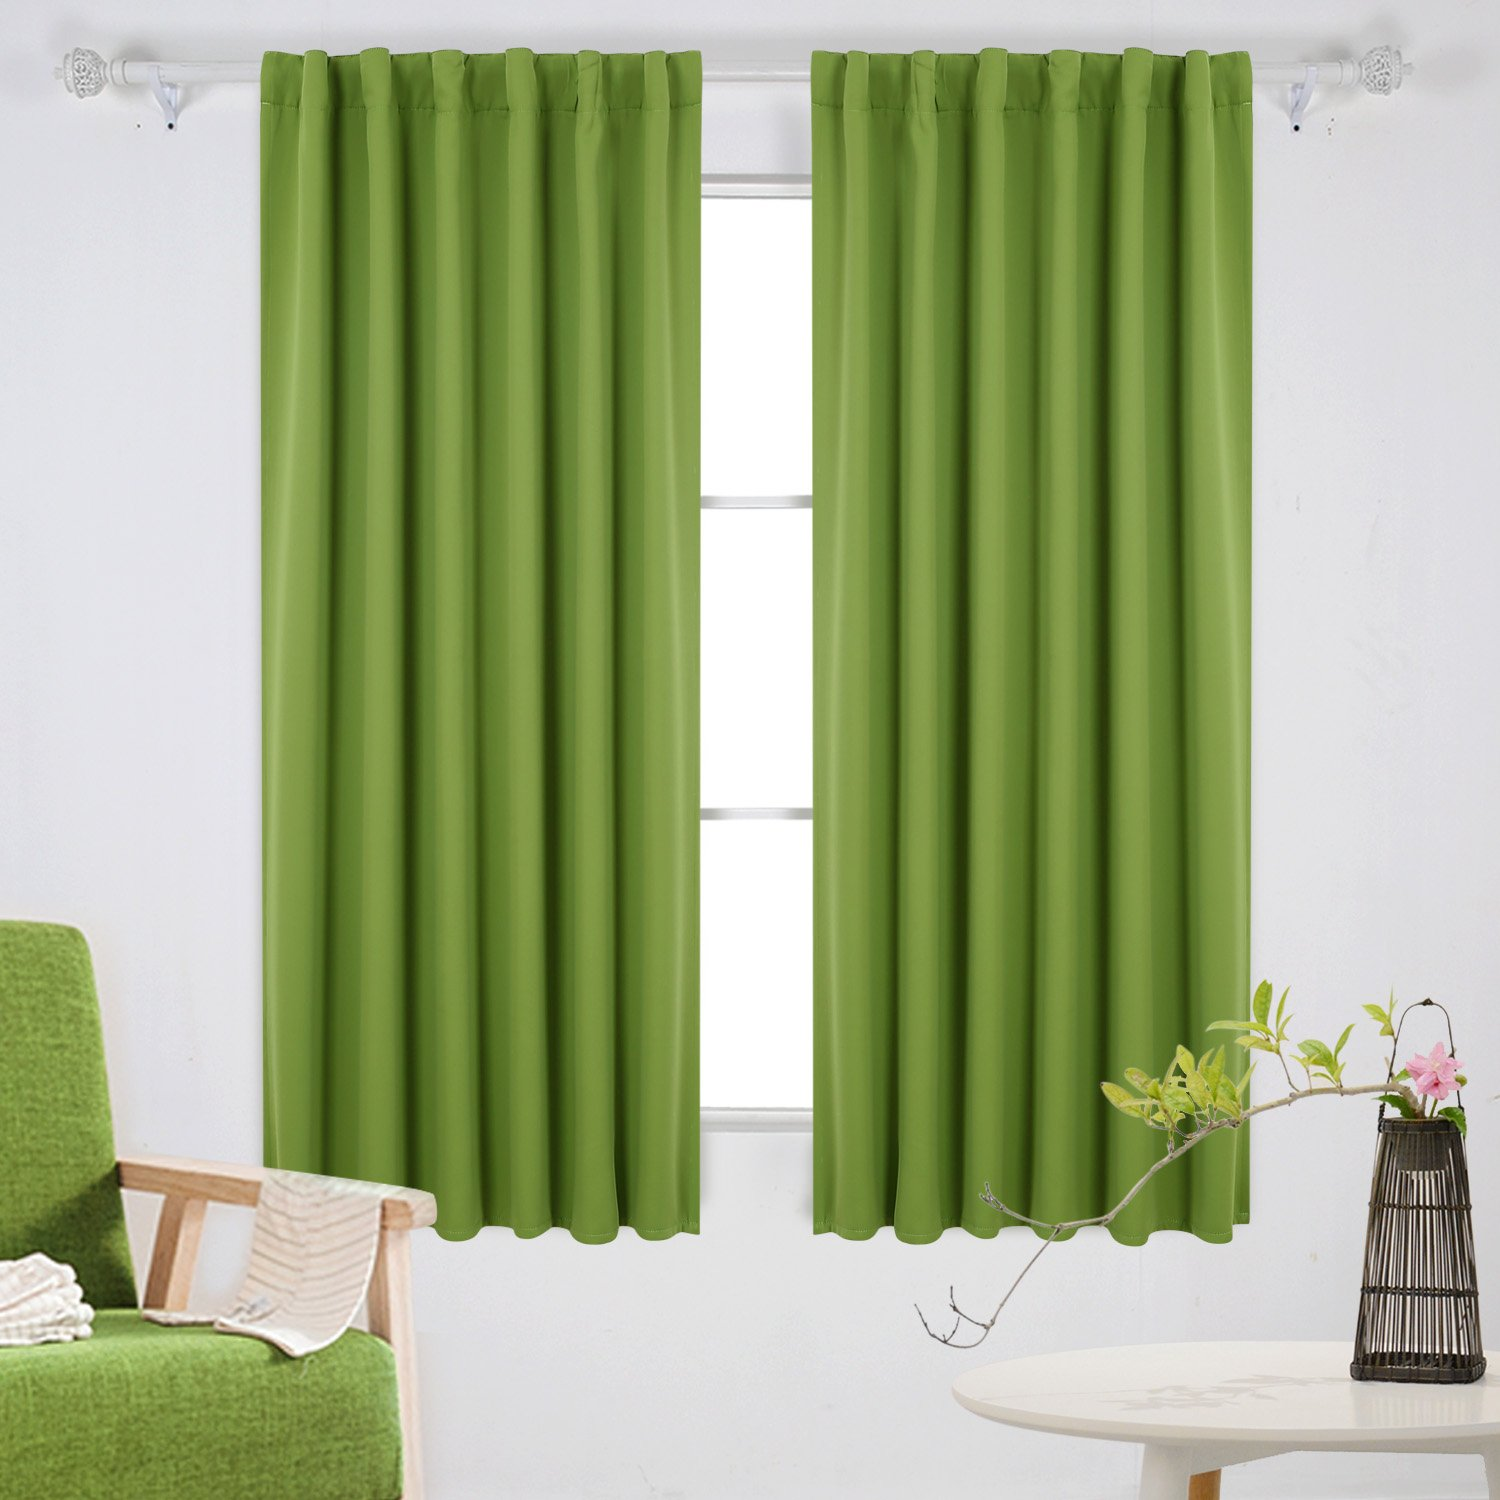 Deconovo Thermal Insulated Blackout Curtains Rod Pocket and Back Tab Curtains Room Darkening Curtains